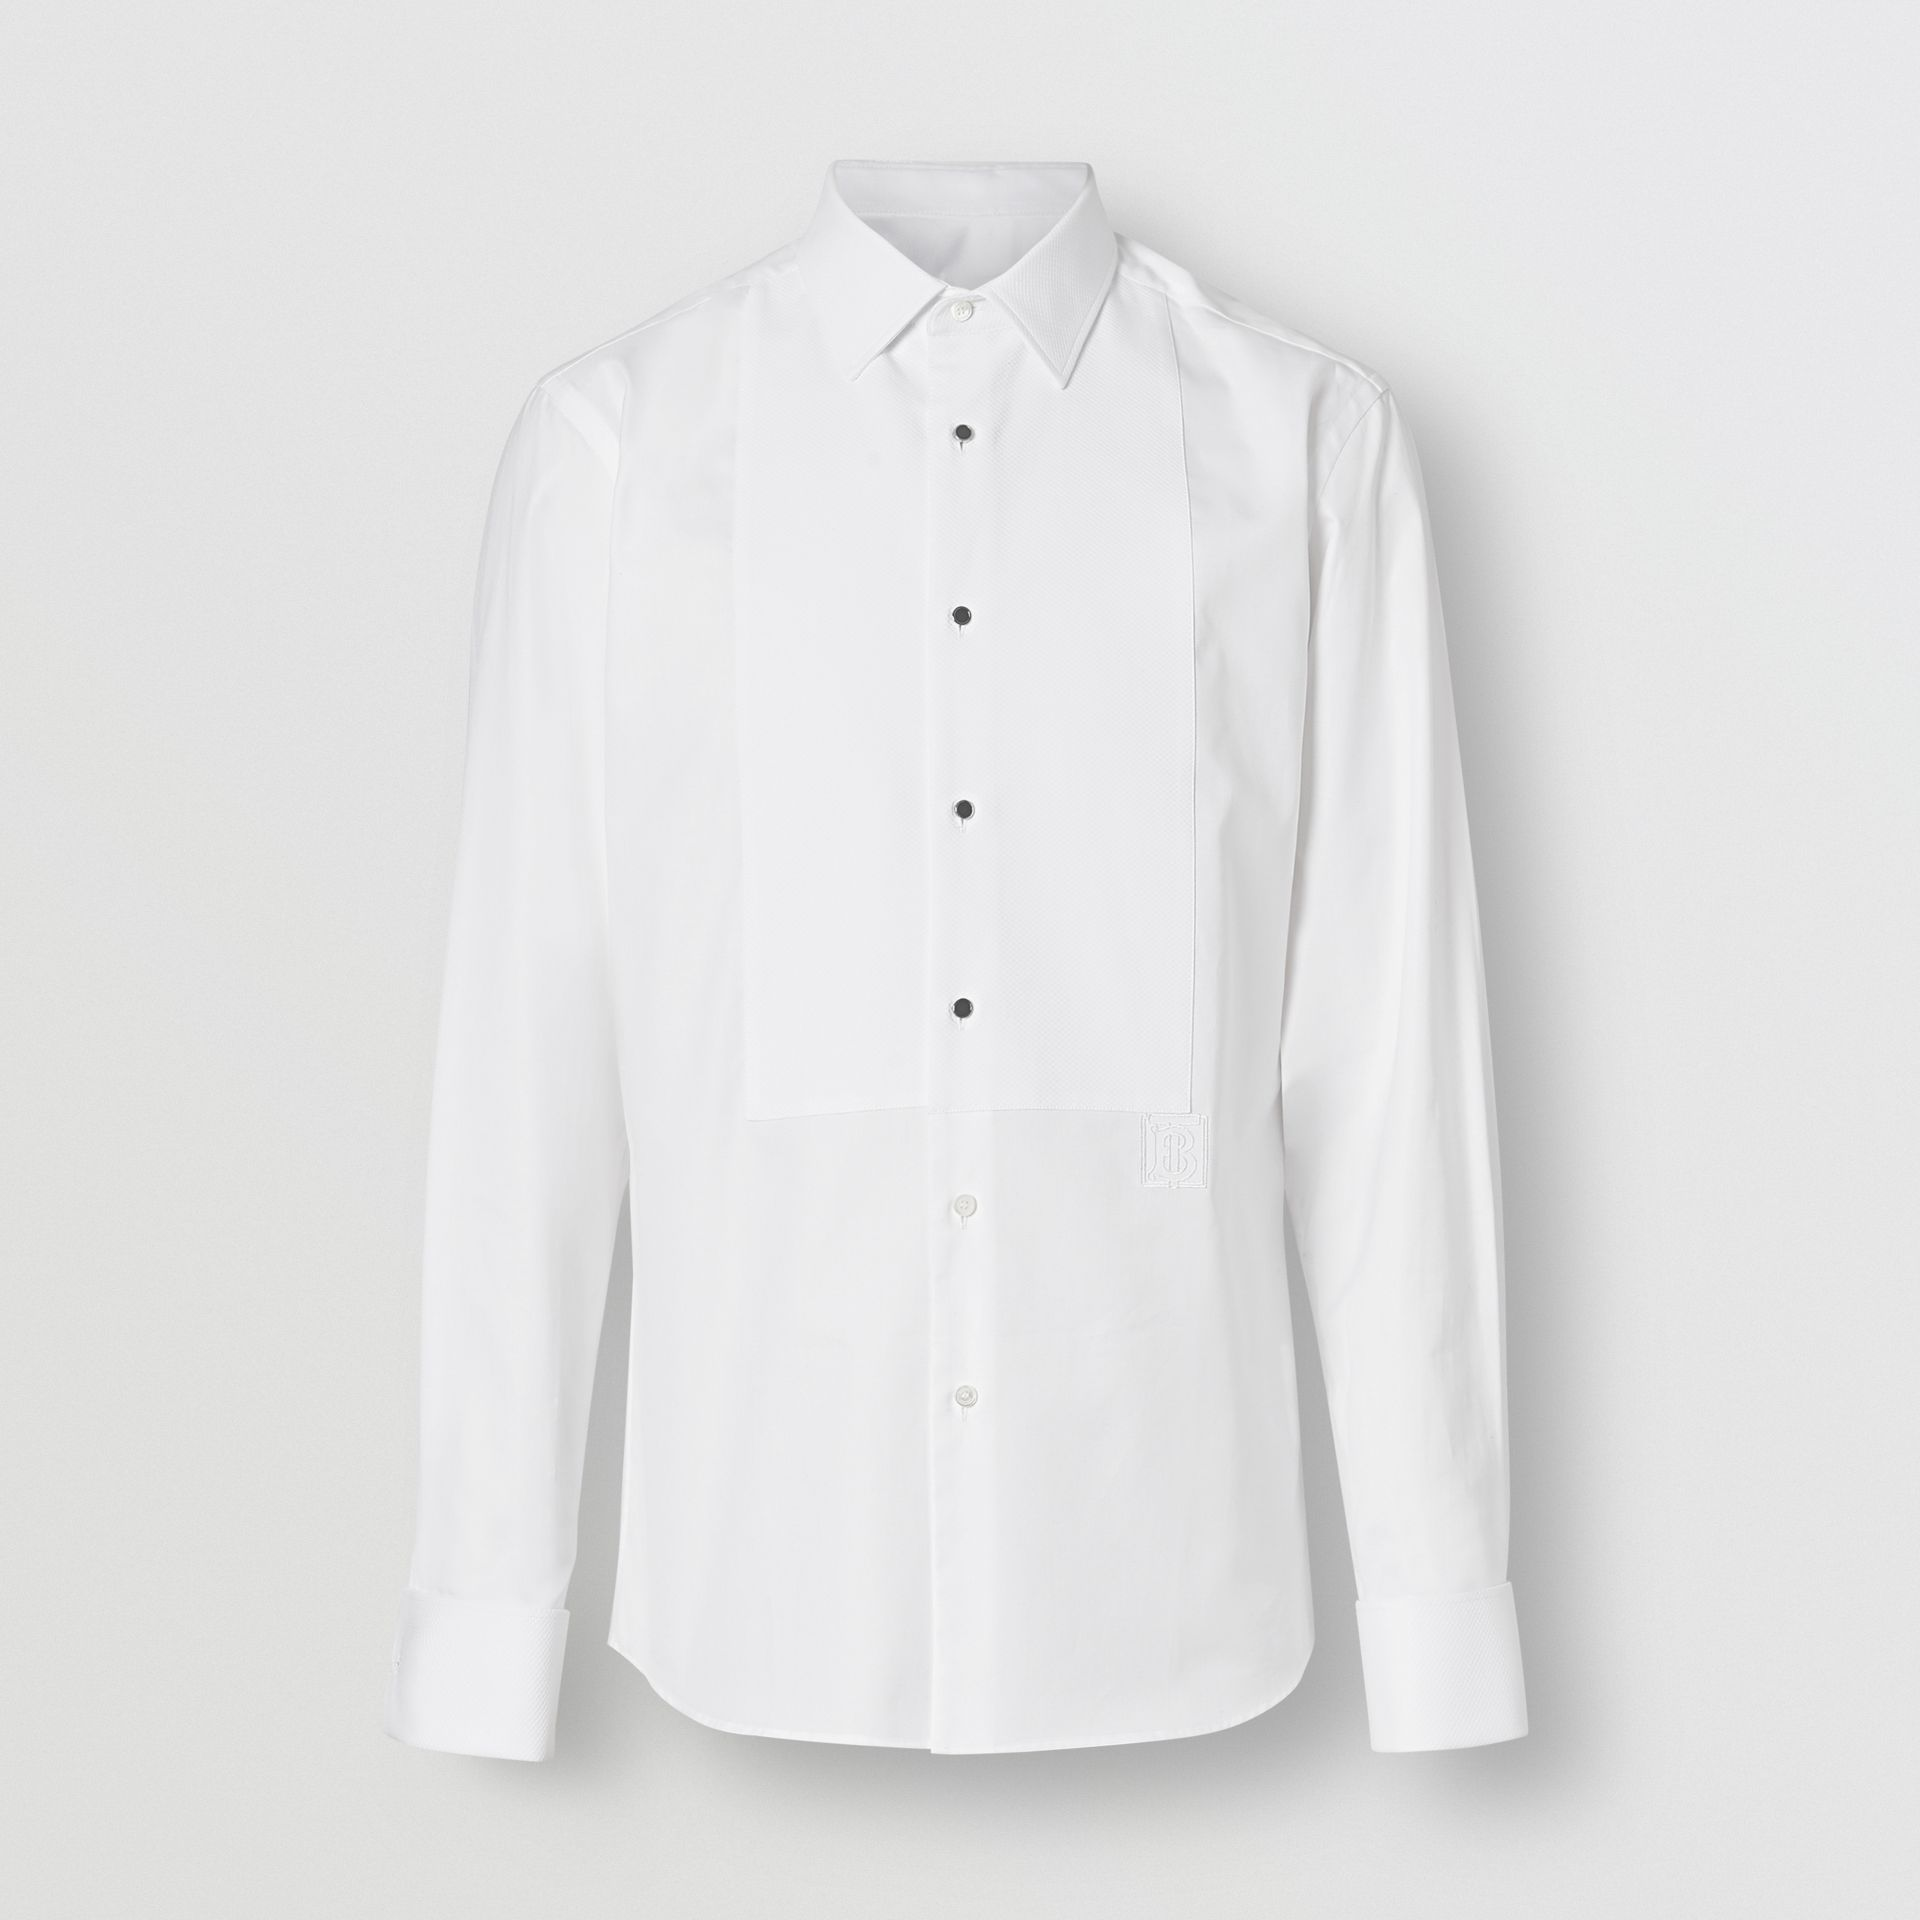 Panelled Bib Cotton Oxford Dress Shirt in White - Men | Burberry Hong Kong S.A.R - gallery image 3